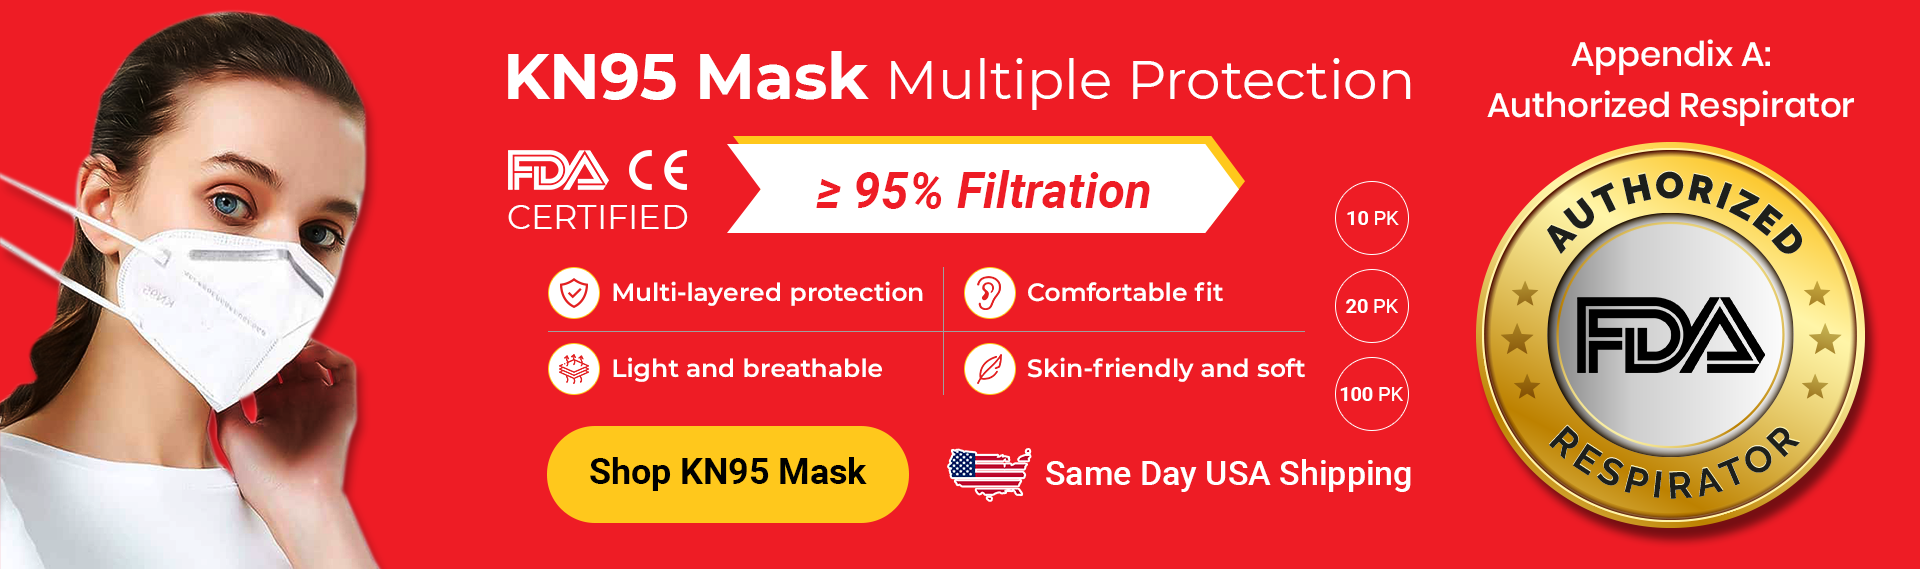 CDC Approved KN95 Masks for Sale at Databazaar.com